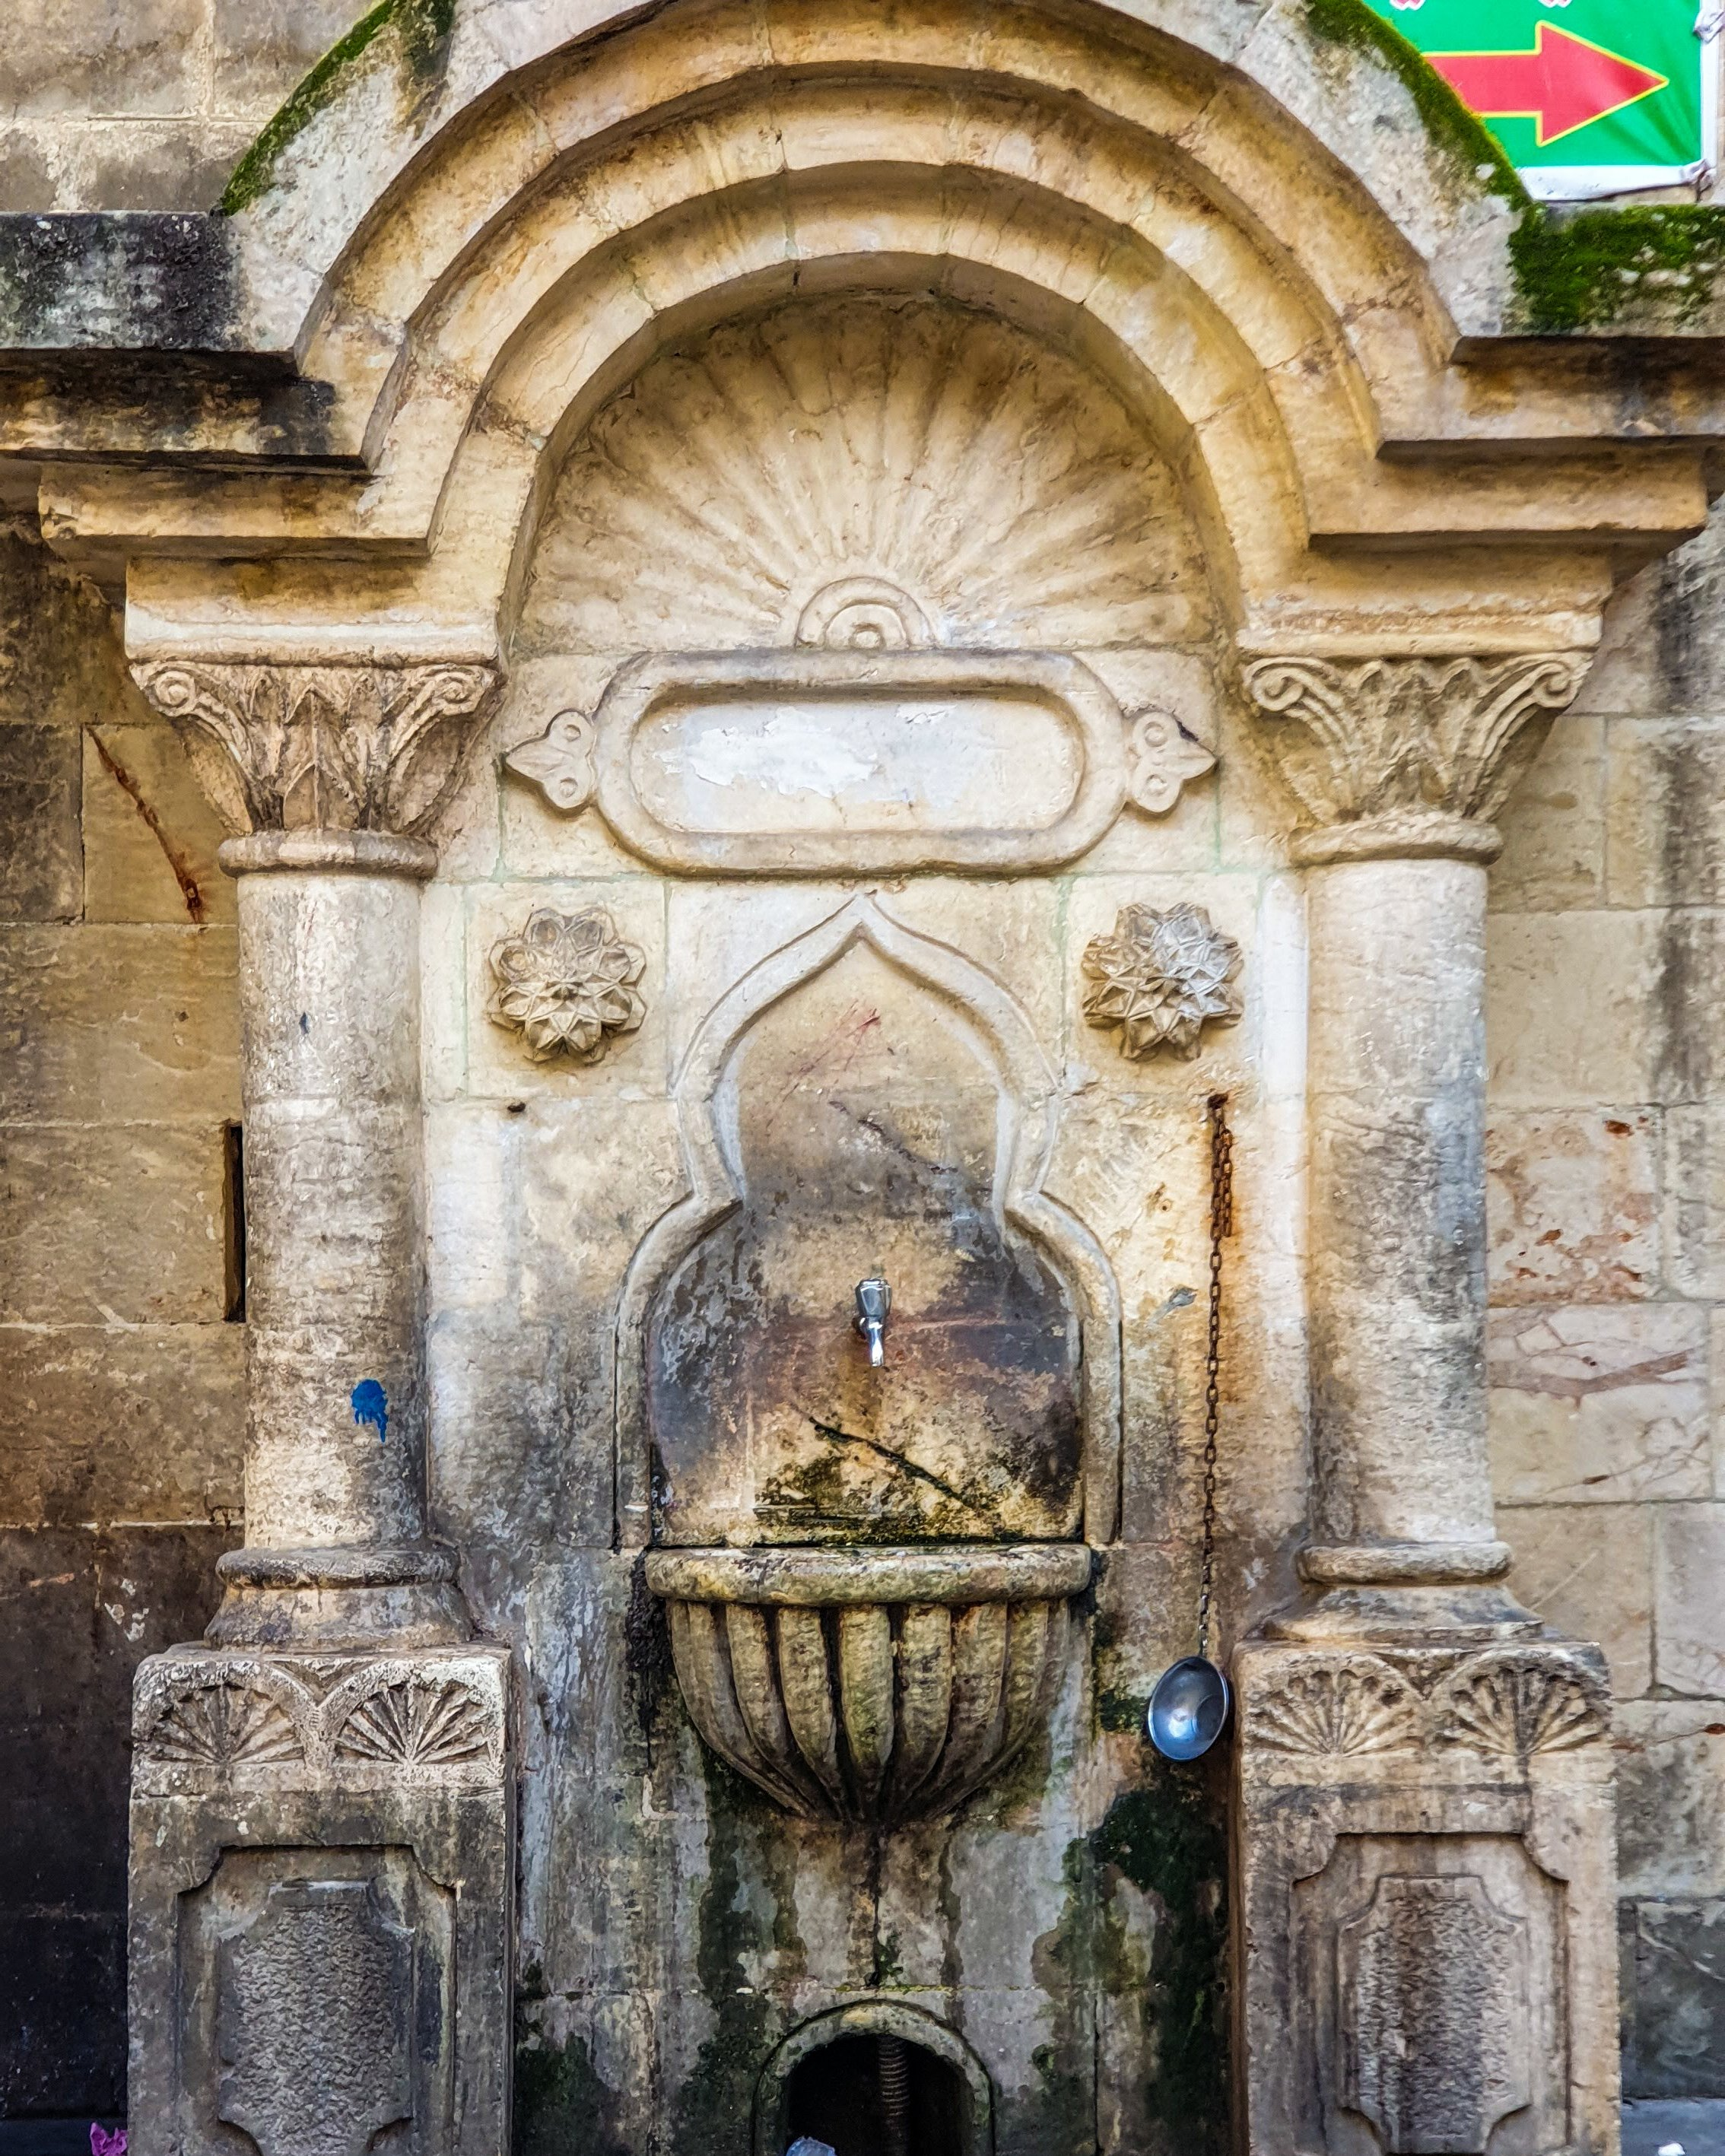 A historic fountain in the back alleys of the covered bazaar. (Photo by Argun Konuk)